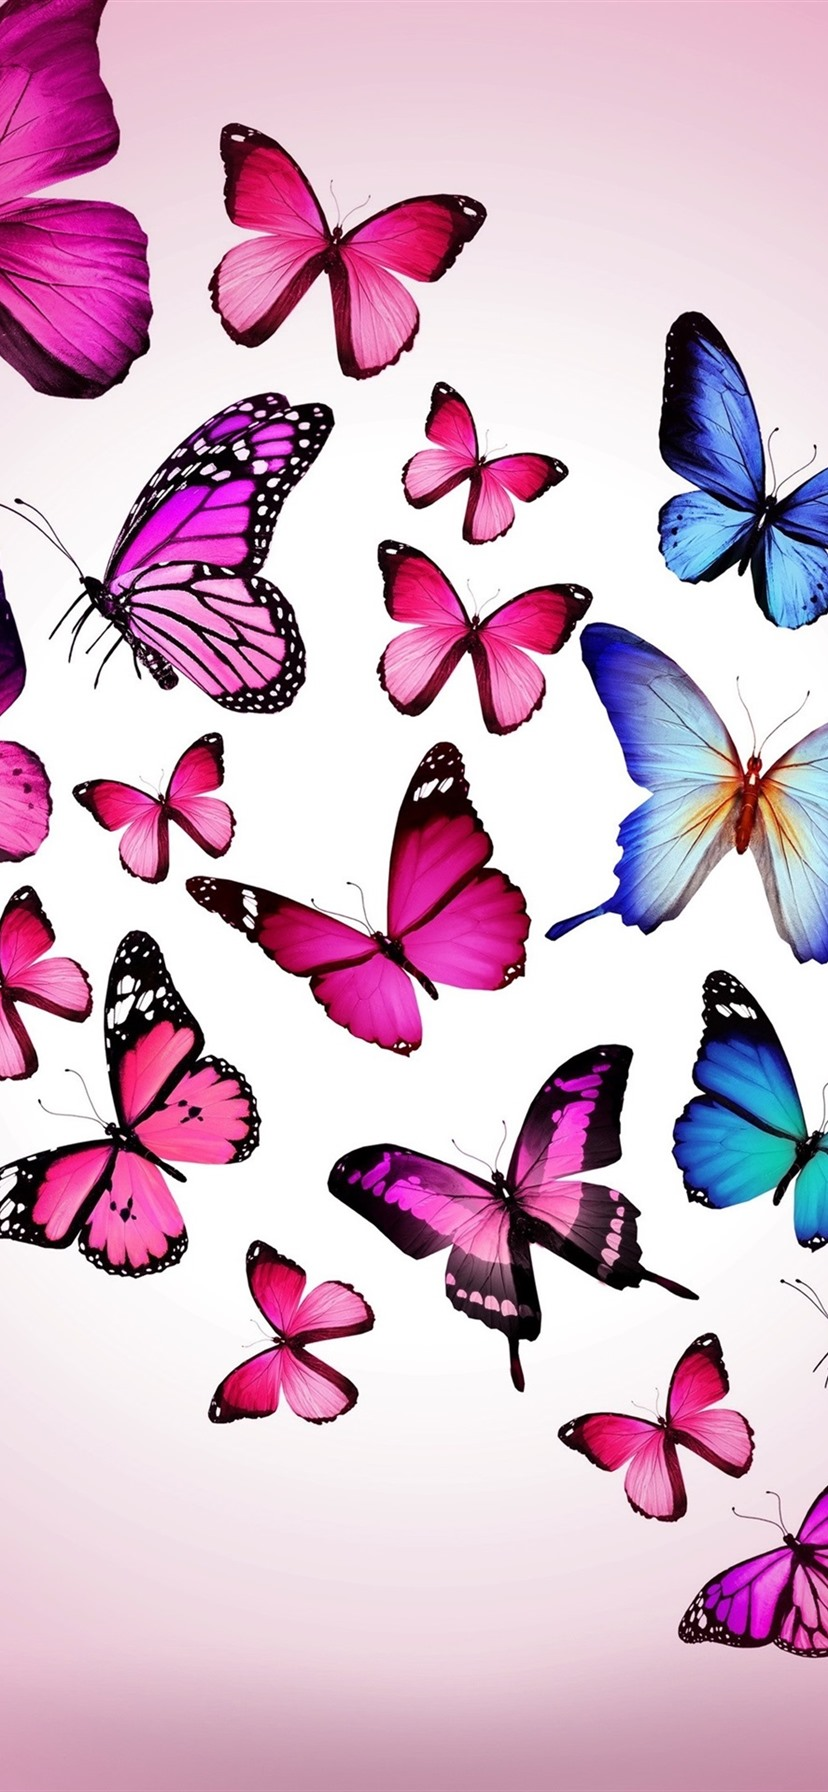 Purple And Blue Butterflies 1080x1920 Iphone 8 7 6 6s Plus Wallpaper Background Picture Image